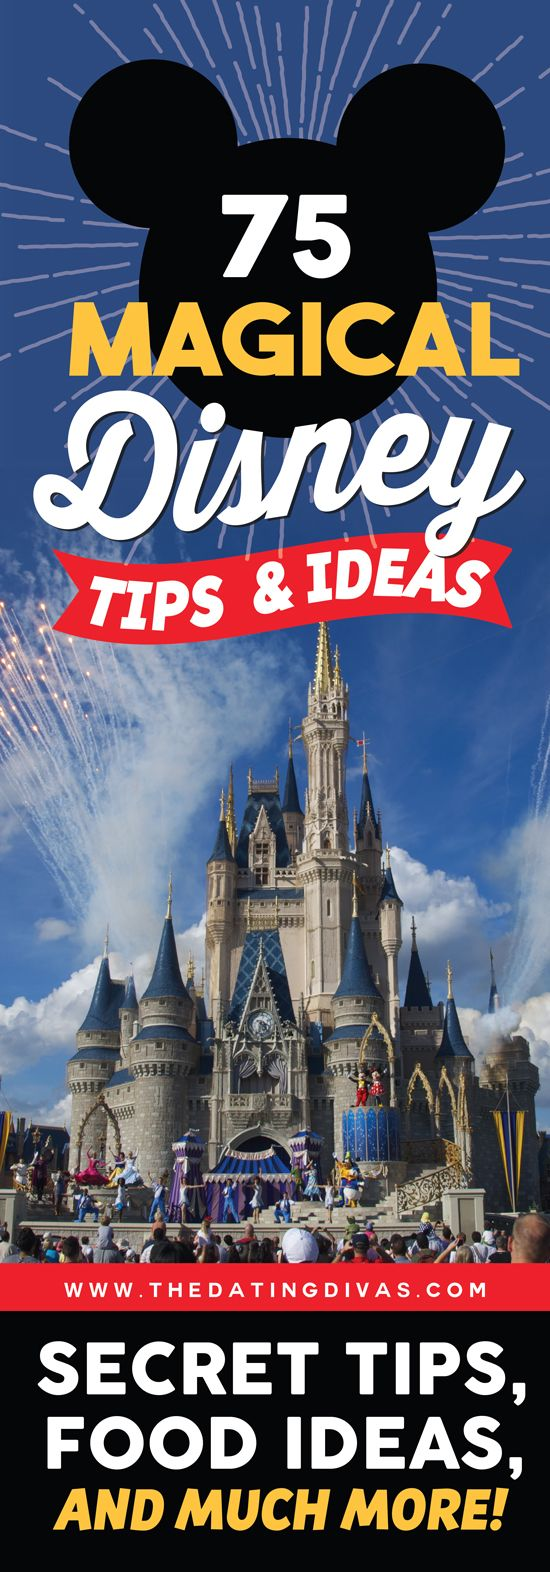 The ULTIMATE Disney vacation guide for families! Tons of secret tips, hacks, and celebration ideas to get you psyched for your upcoming Disney trip! www.TheDatingDivas.com